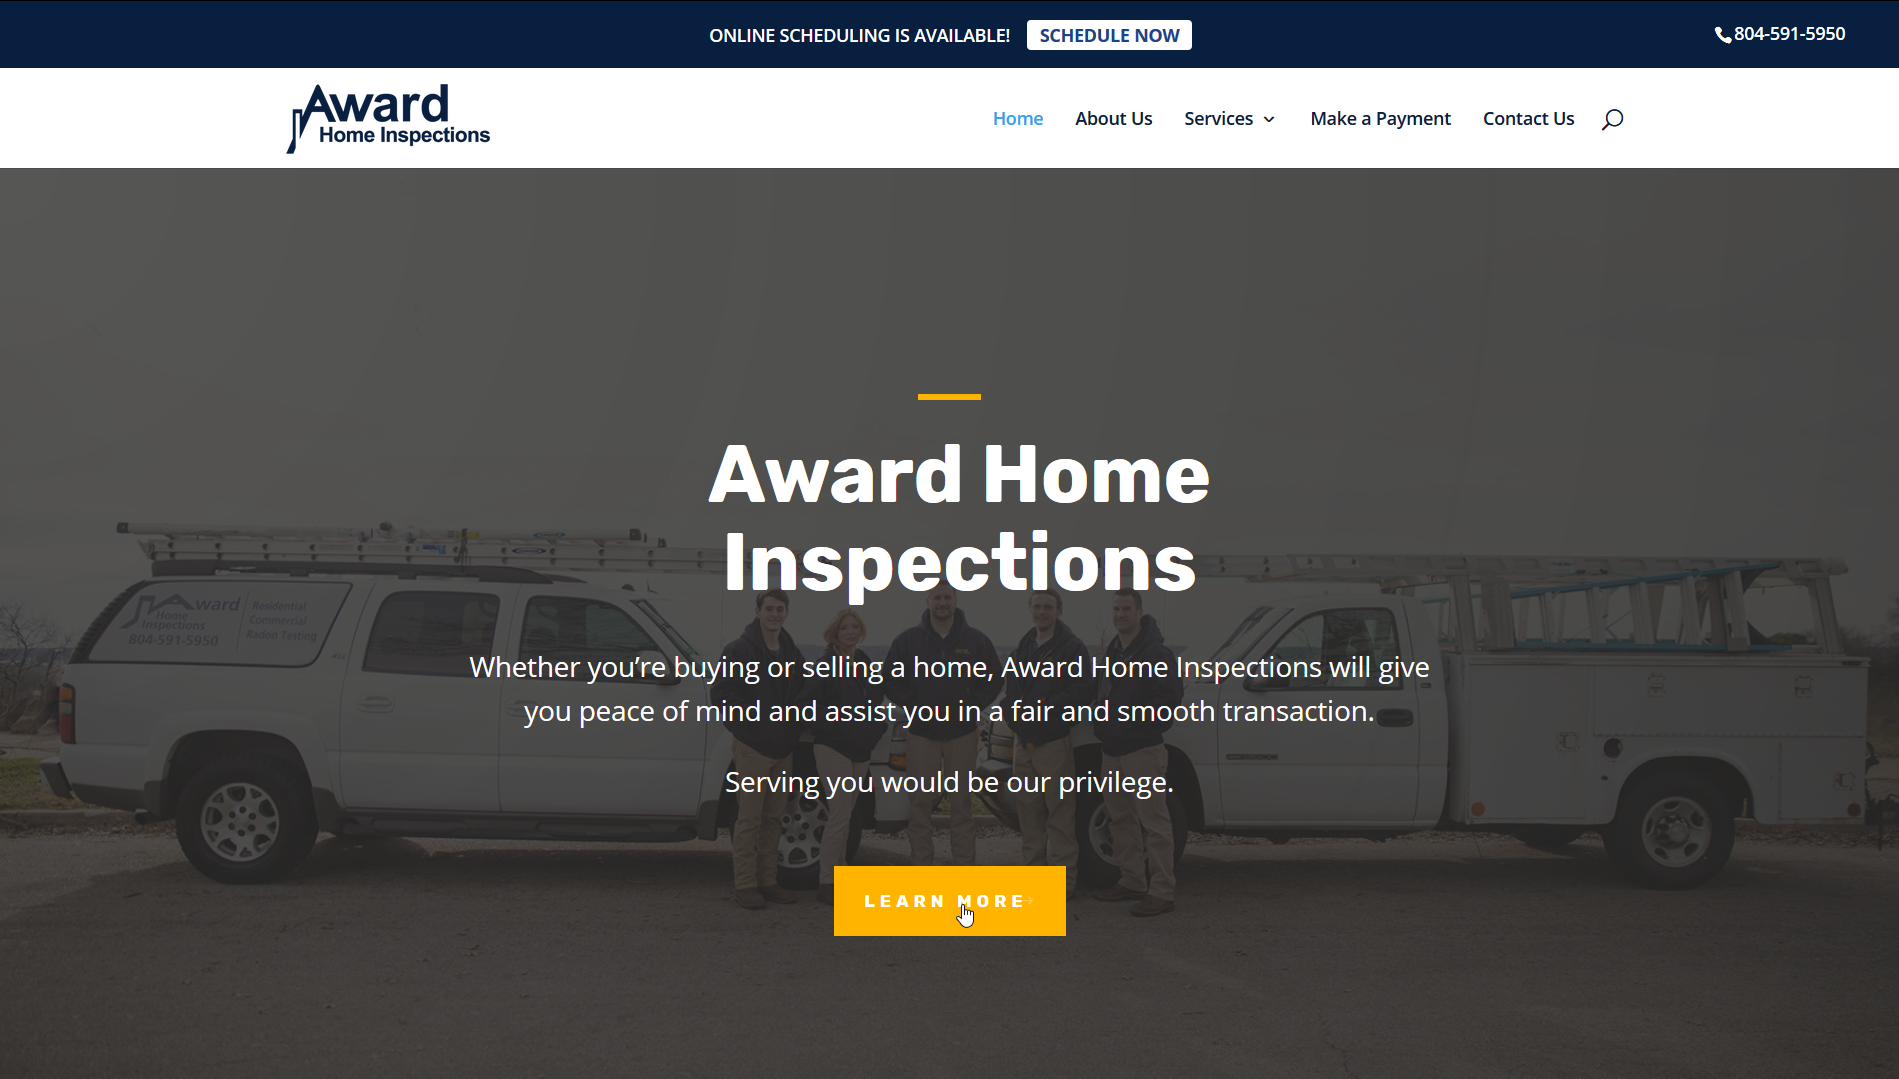 Snapshot of the website for Award Home Inspections in central Virginia